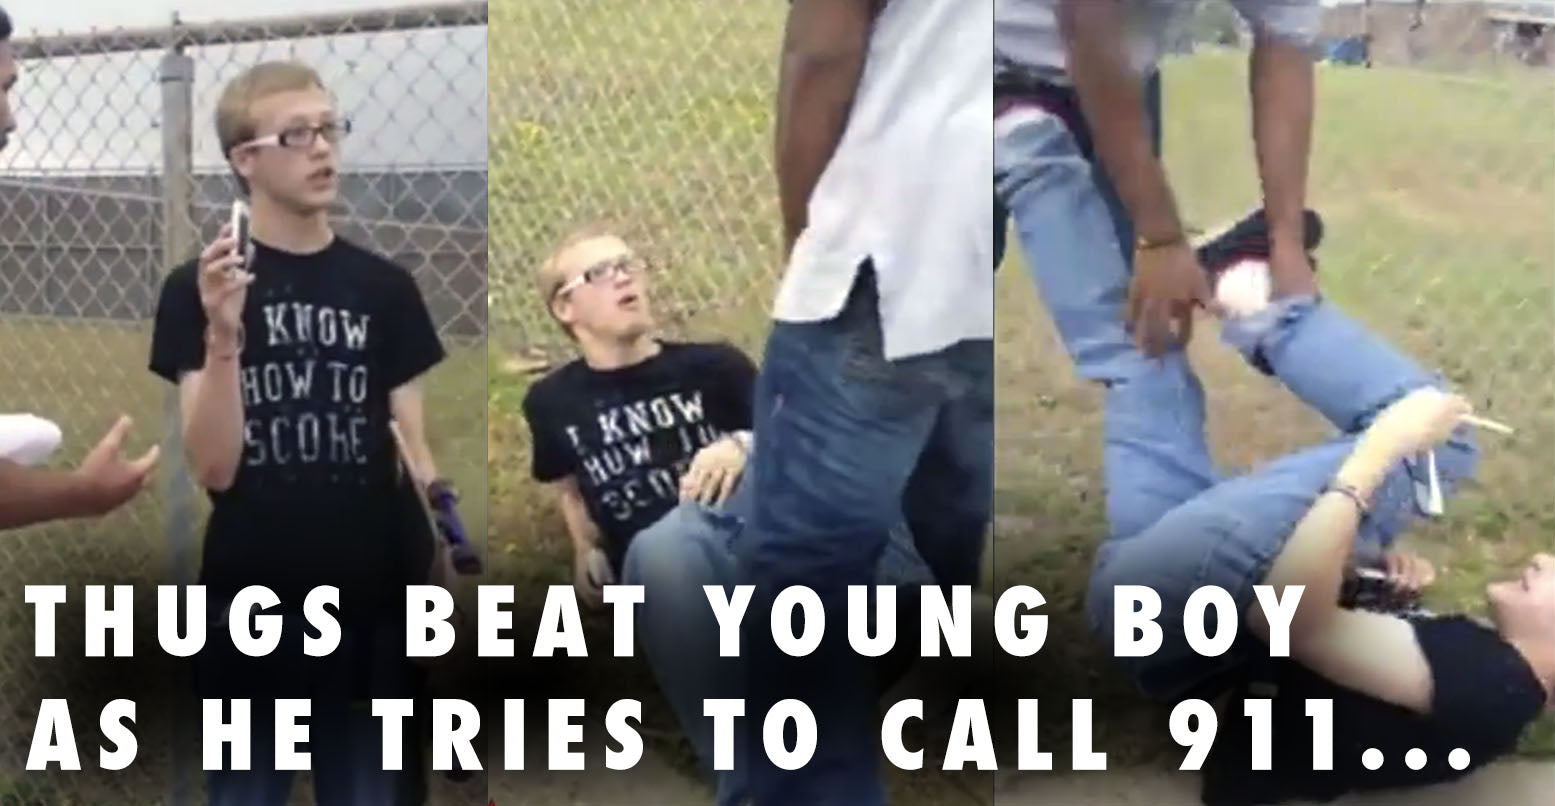 VIDEO: Young Boy Beat Up While He Tries To Call 911